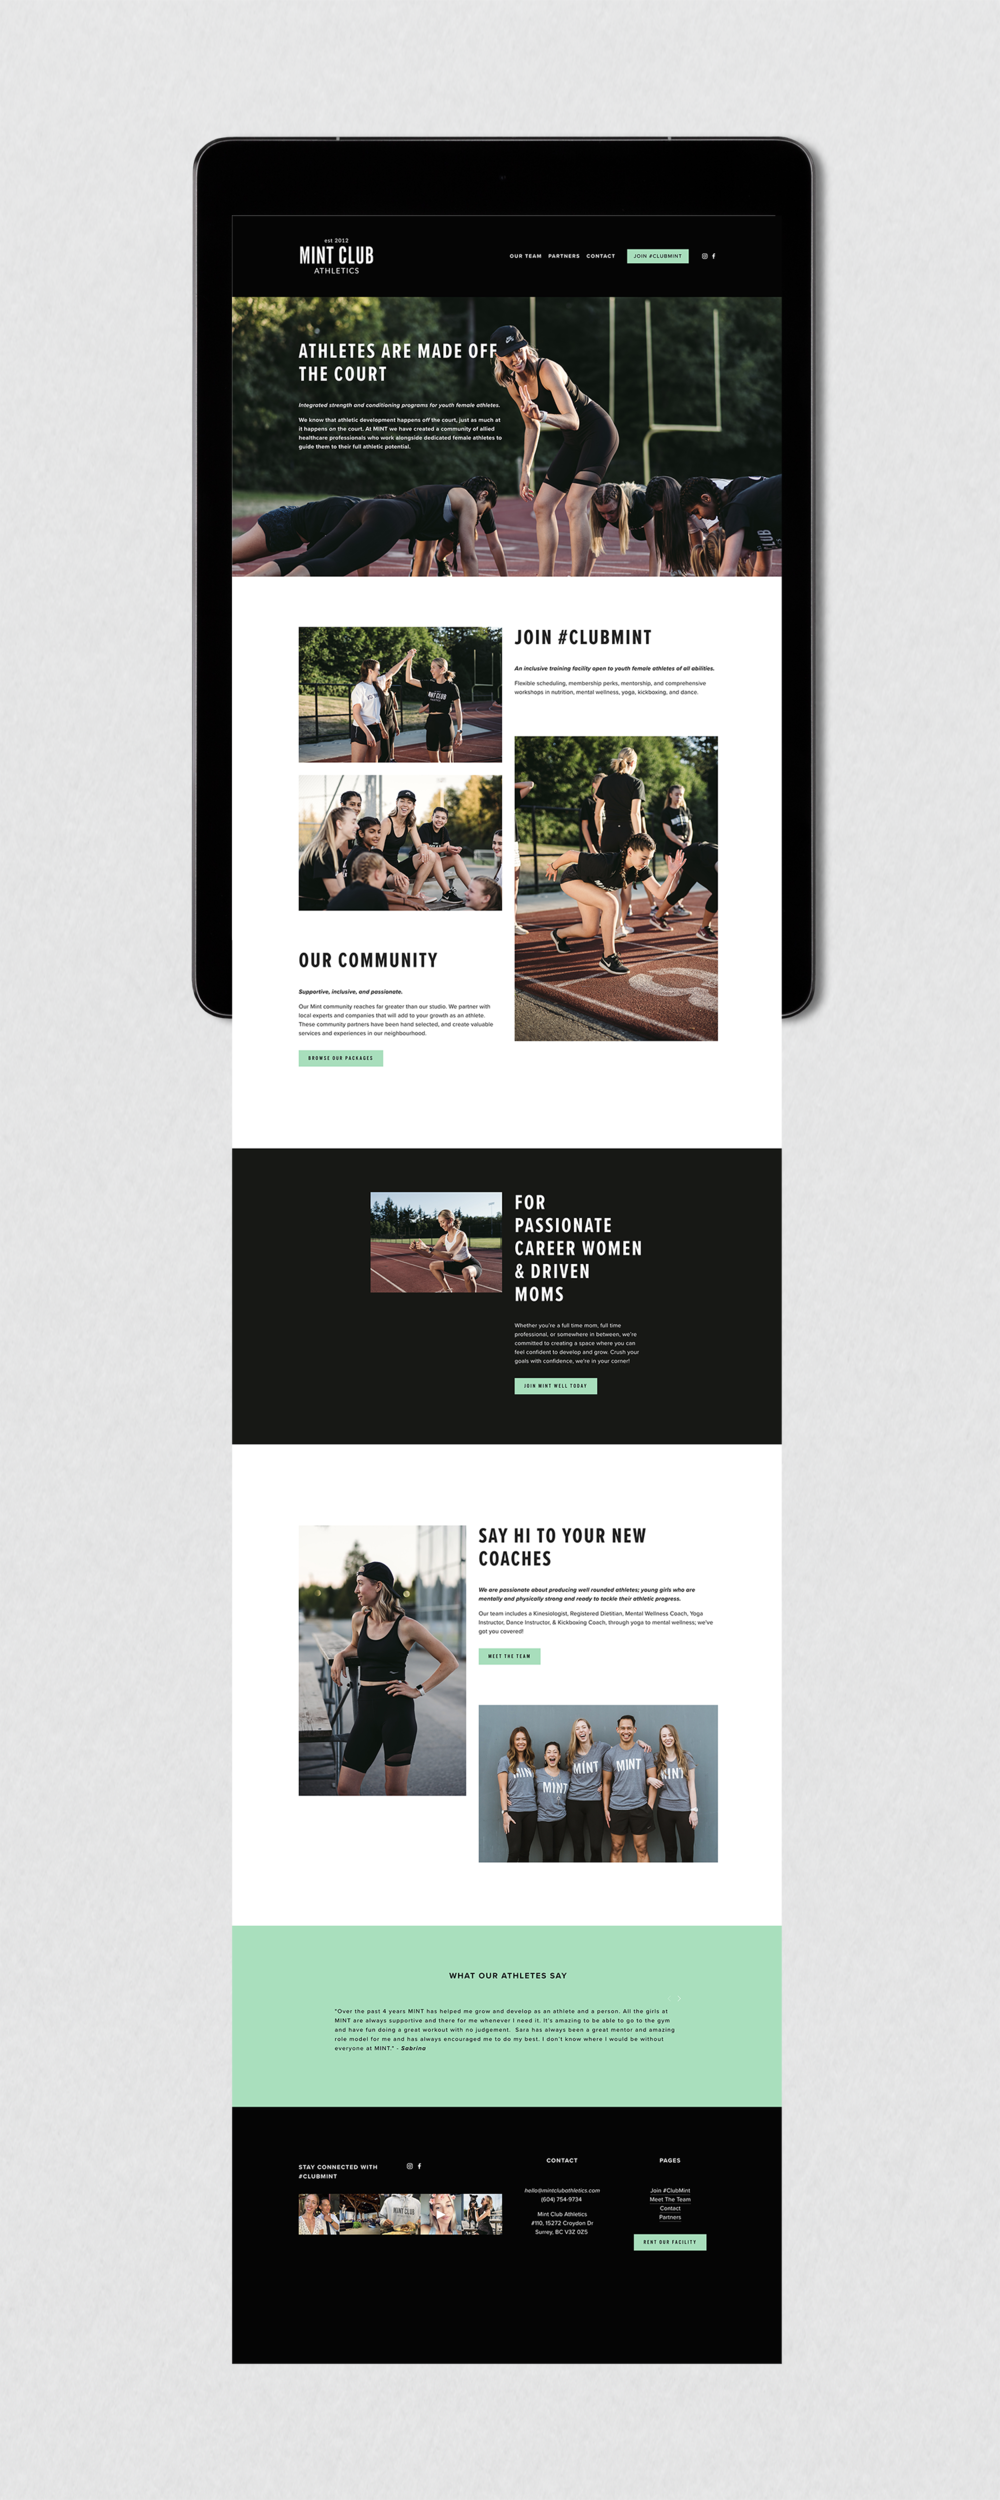 Full view of the Squarespace website designed for Mint Club Athletics in White Rock, BC